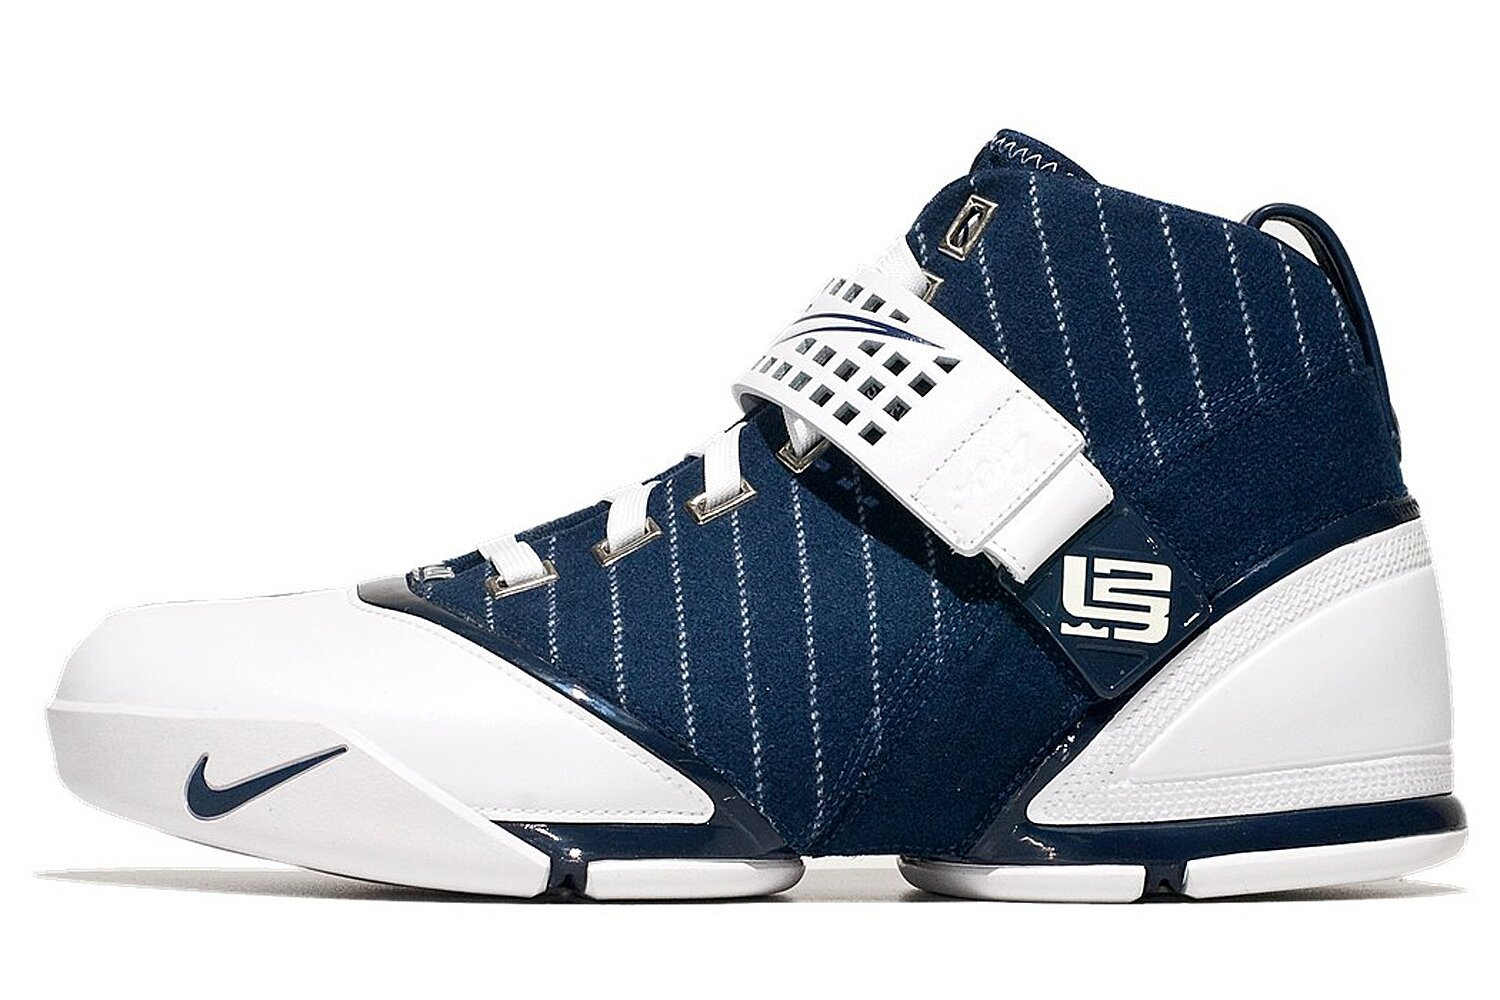 buy online 72343 8a6ad LeBron James Signature Sneakers  Ranking the Best of the King   SI.com